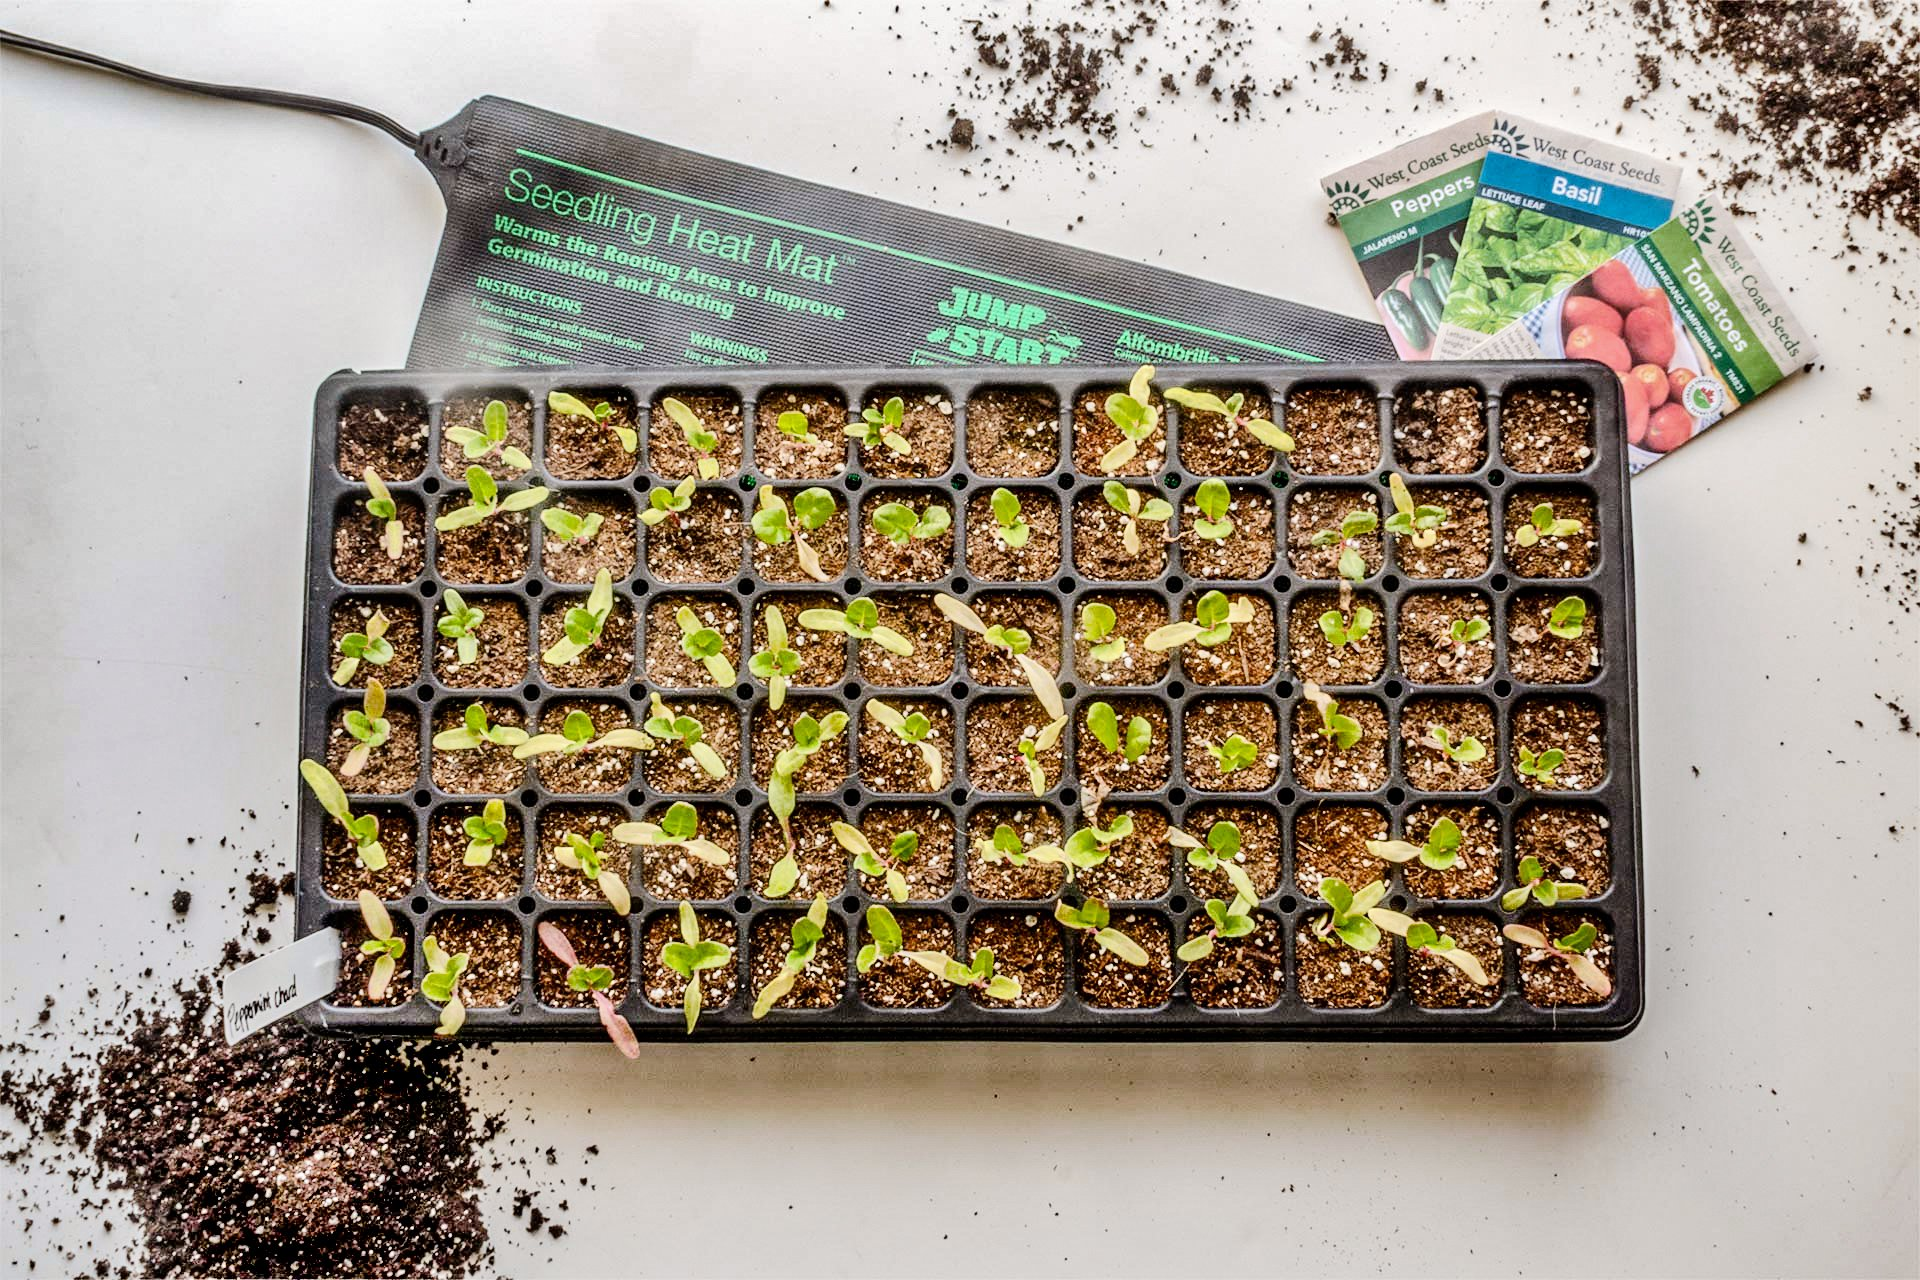 Plants heat mat